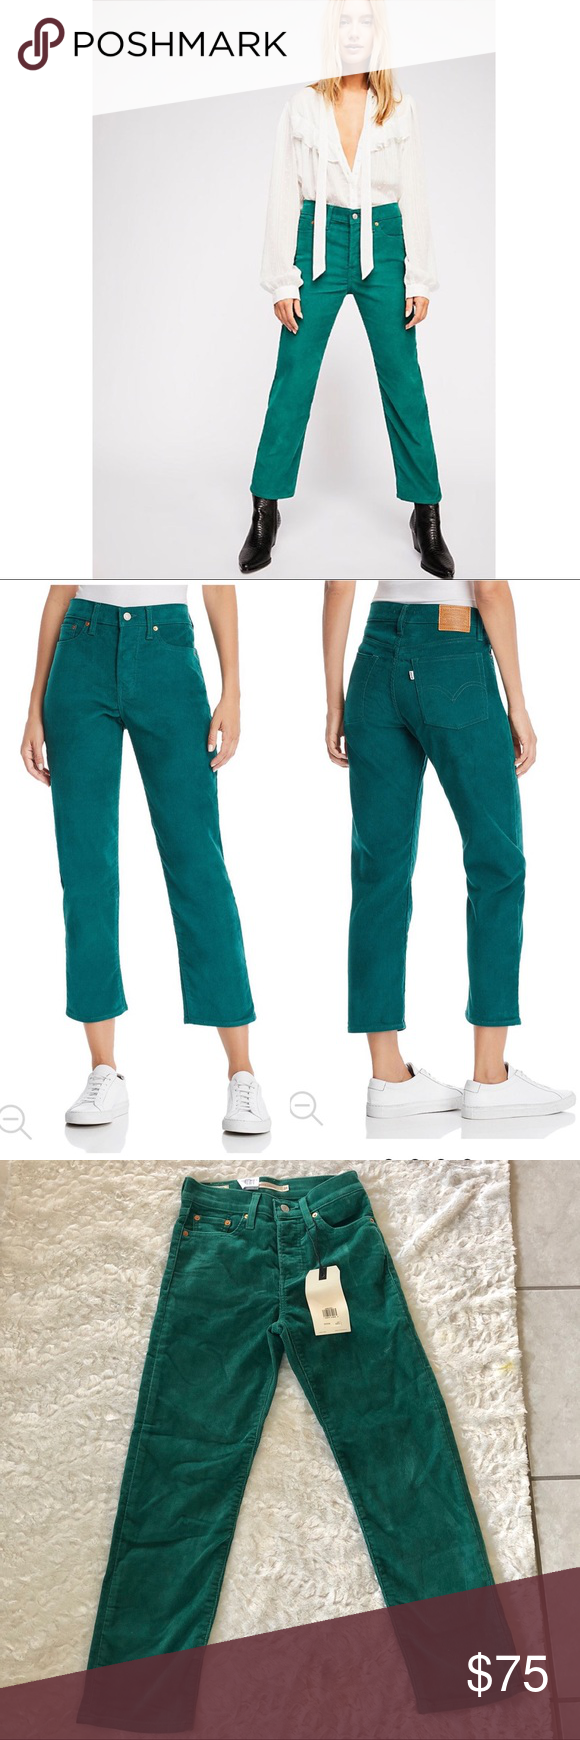 New Levi S Wedgie Straight Corduroy Green Pants Nwt My Posh Closet